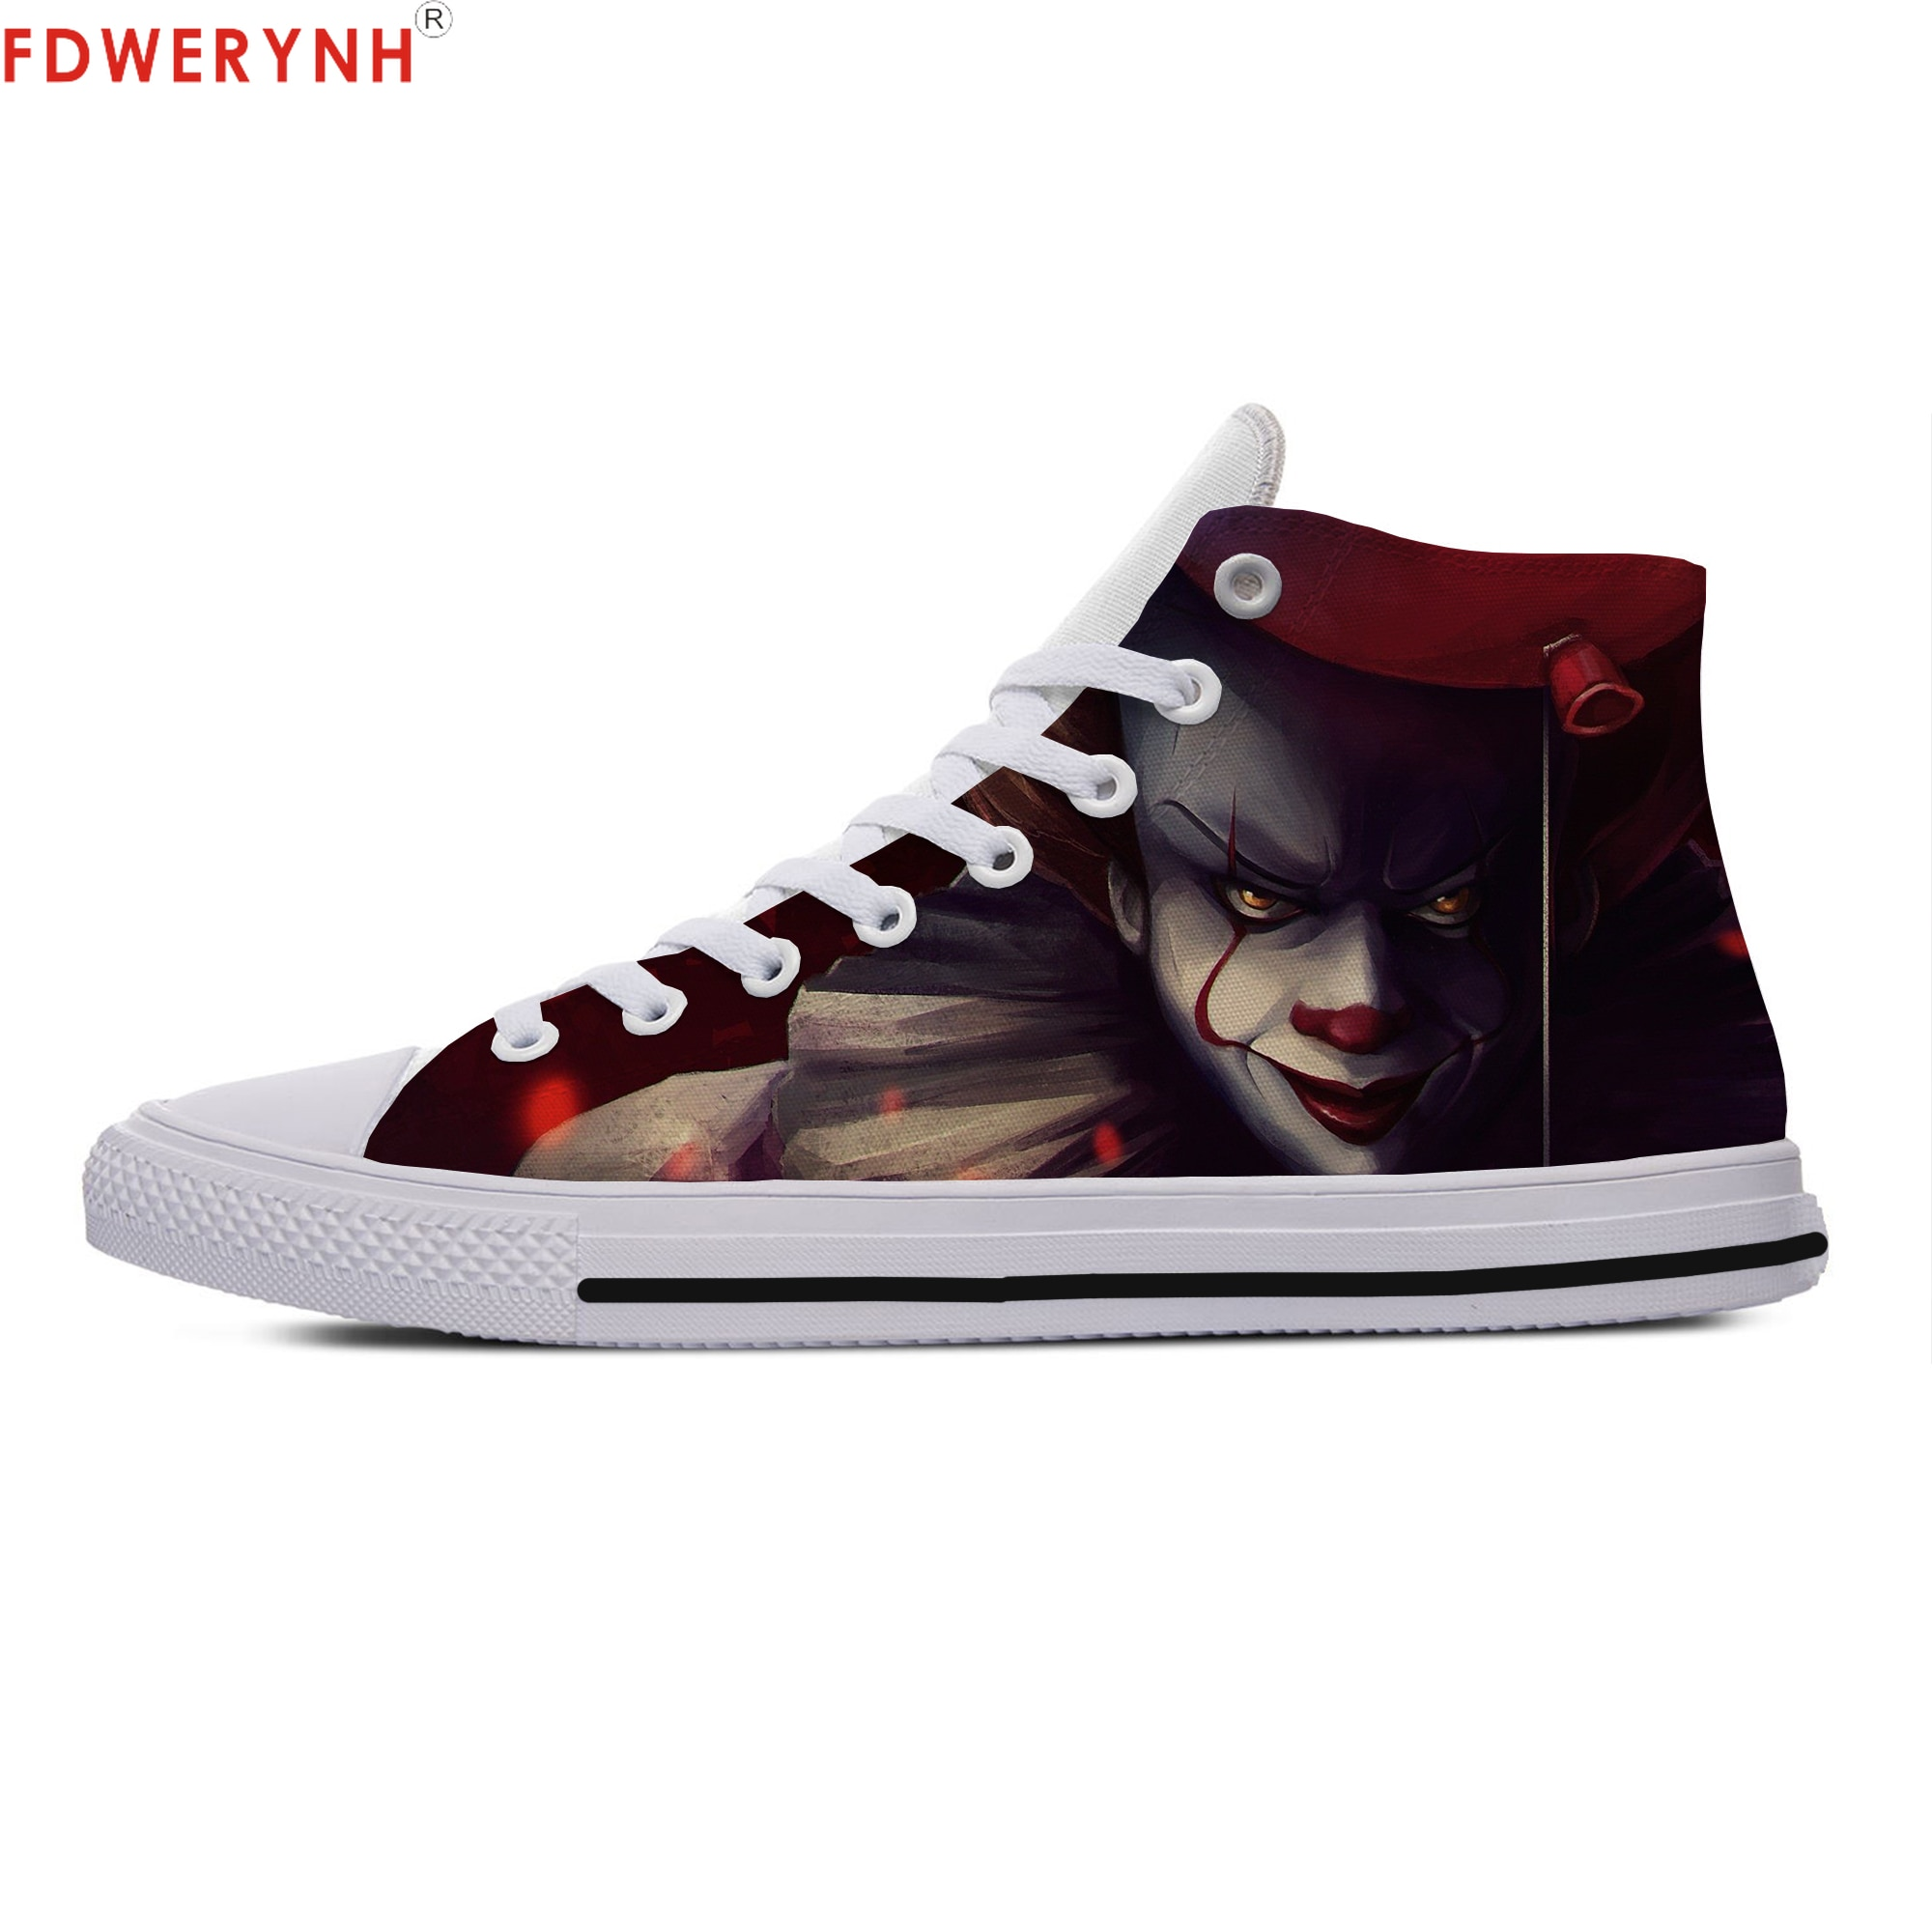 Men Walking Shoes Movie IT Pennywise Clown Stephen King 1990 Horror Movie IT Custom Images Or Logo Flat Shoes pennywise costume stephen king s it scary clown mask costume adult men women horror halloween pennywise the clown costume